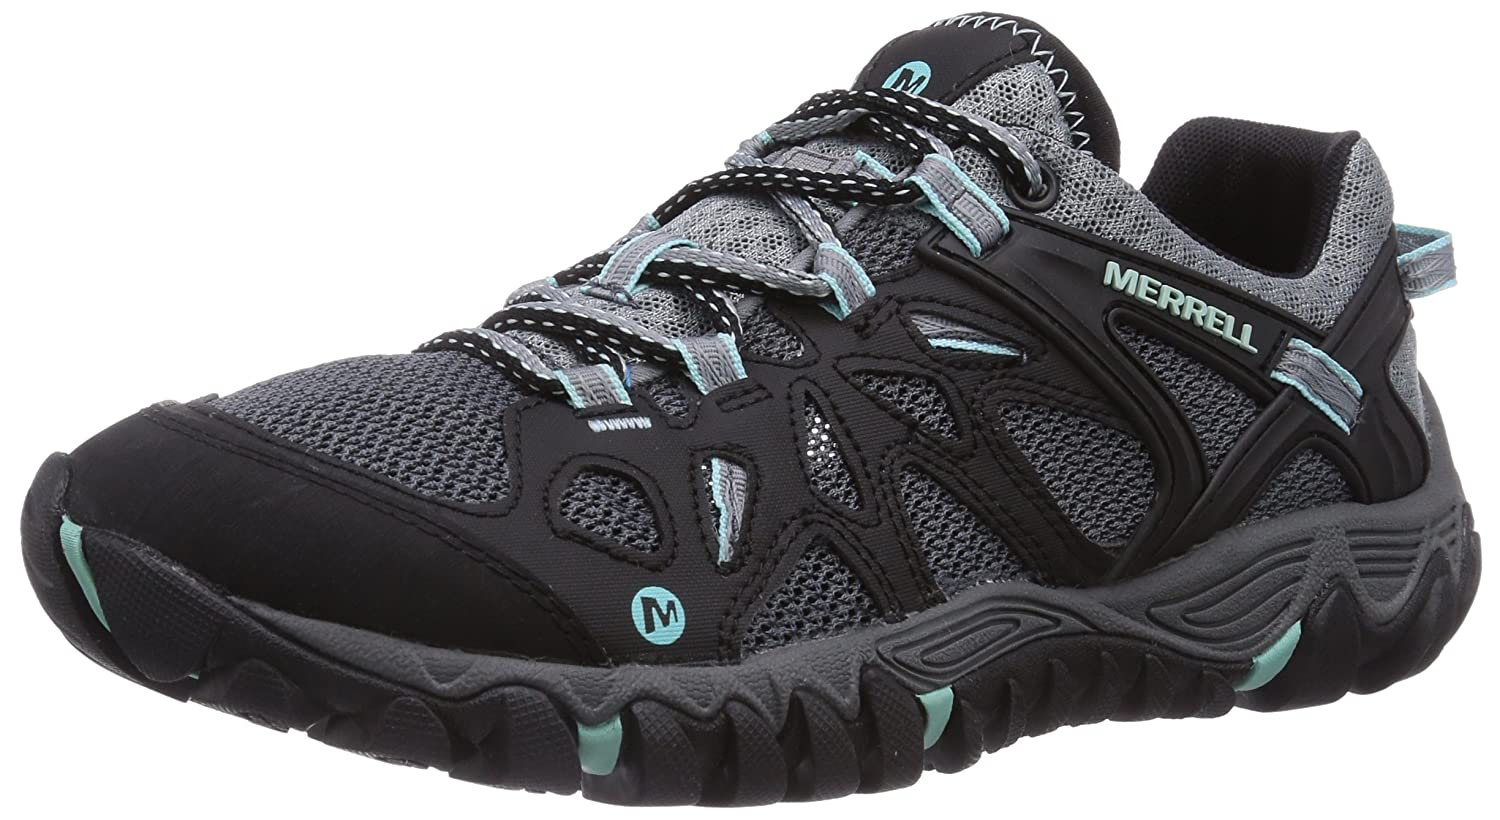 Merrell Women's All Out Blaze Aero Sport Hiking Water Shoe B00KZIUCLO 9 B(M) US|Black/Aventurine